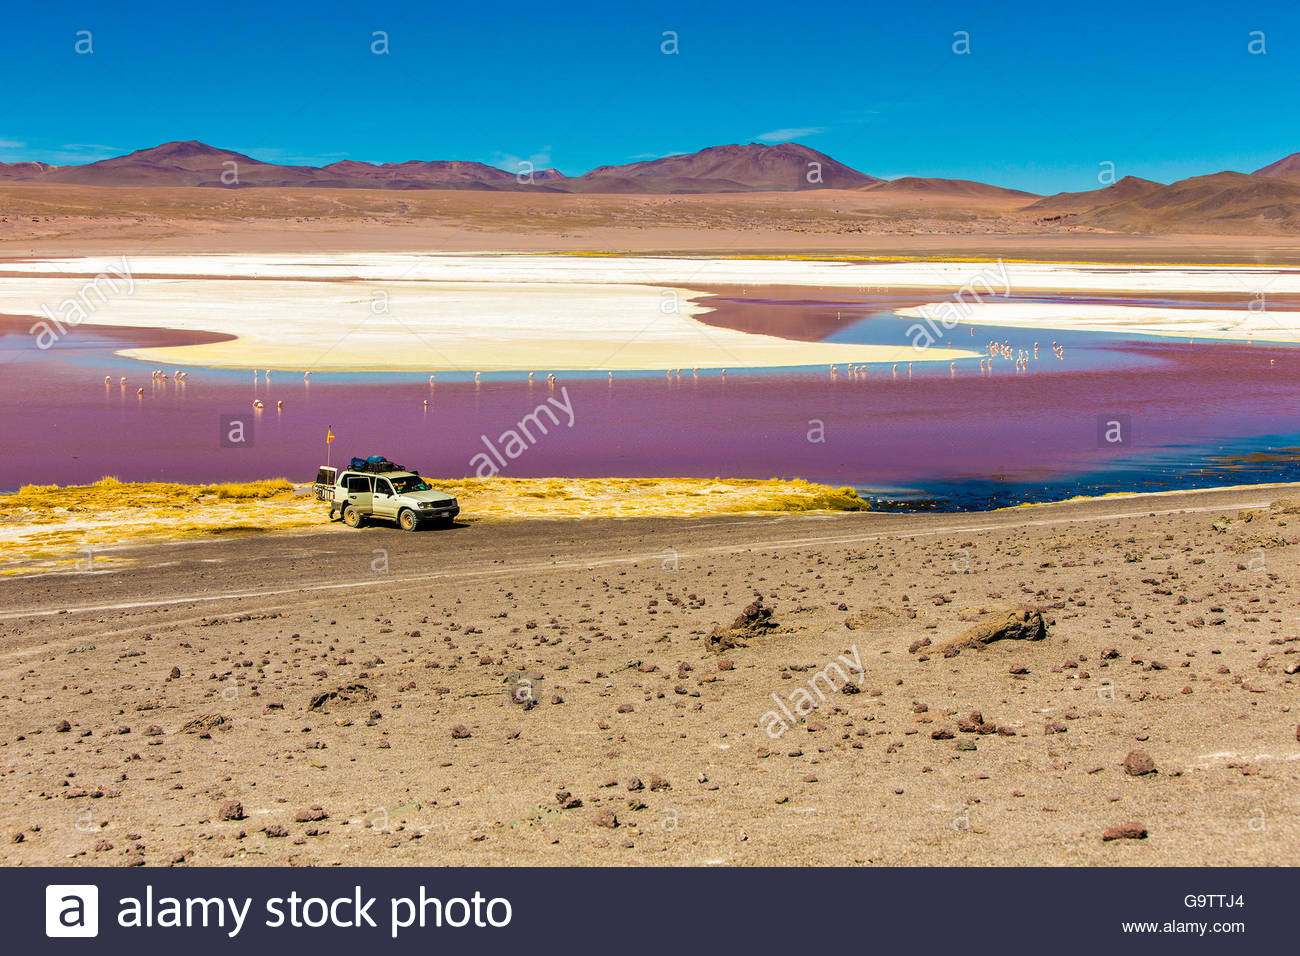 Laguna in the desert in Bolivia - Stock Image